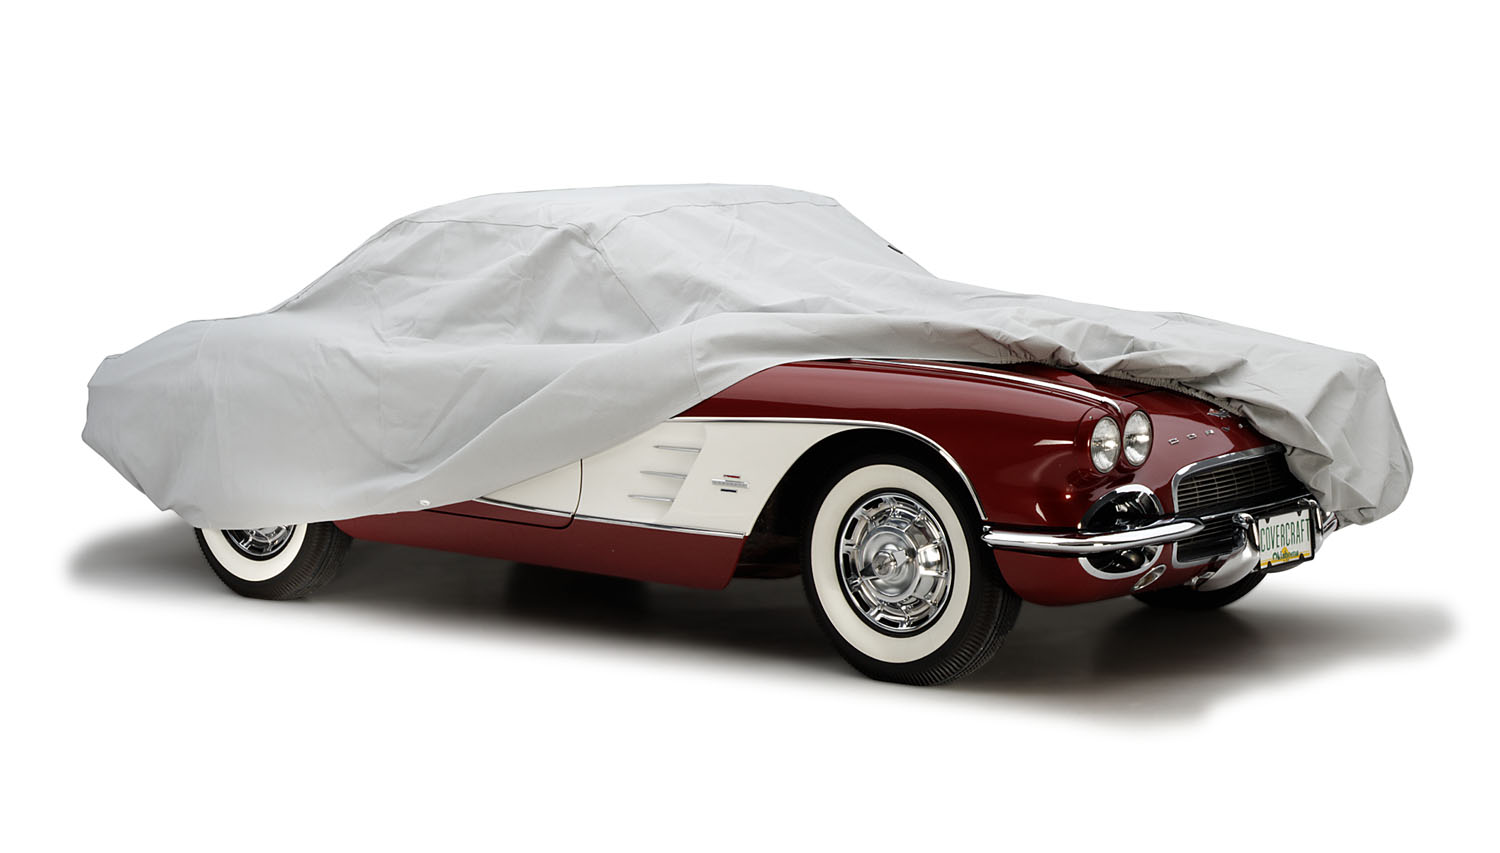 Covercraft Car Cover (CB31TK)